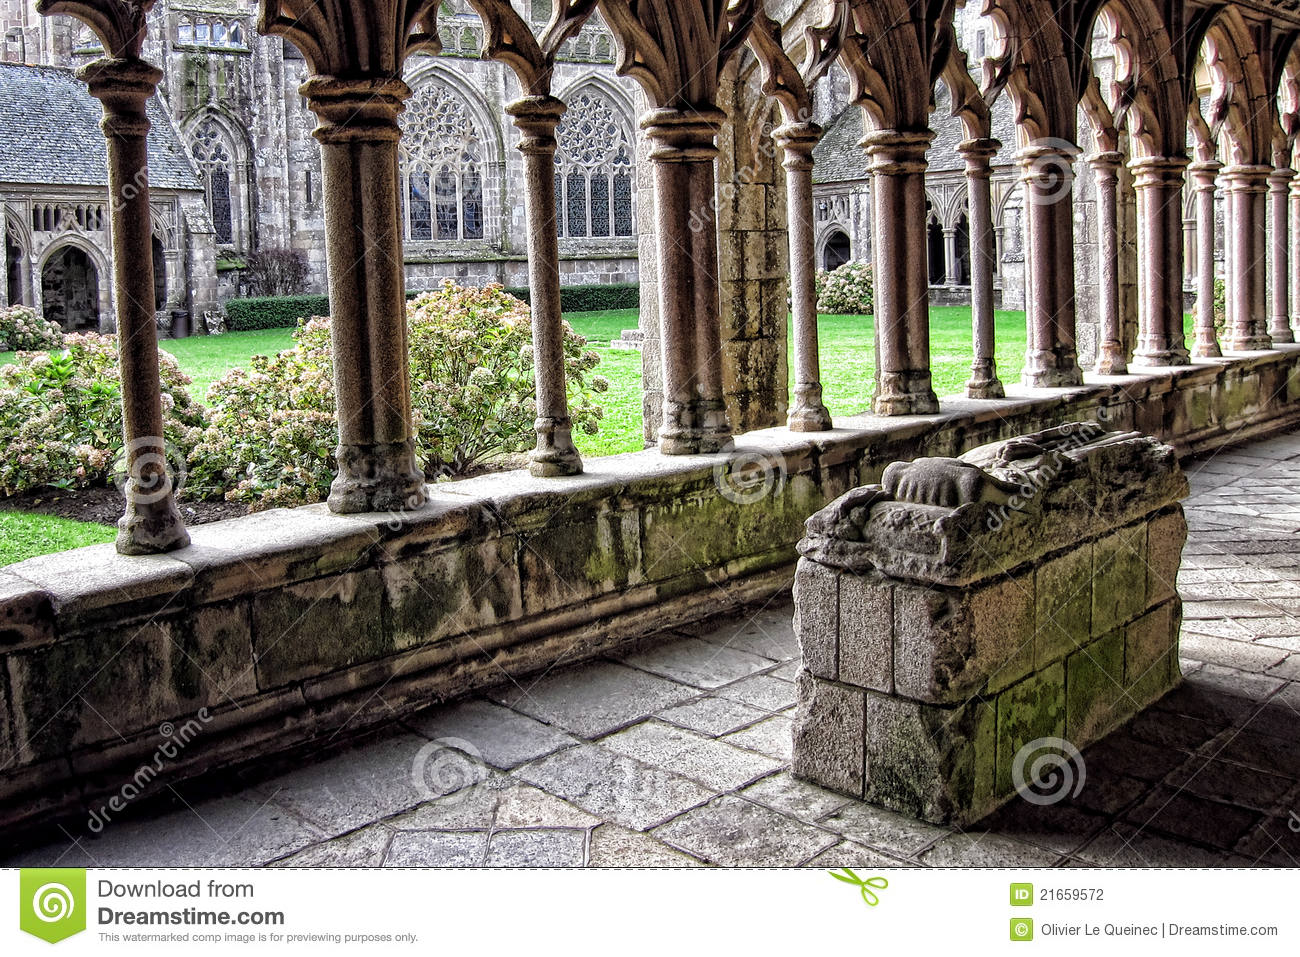 Stone Knight Tomb in Old Gothic Cathedral Cloister